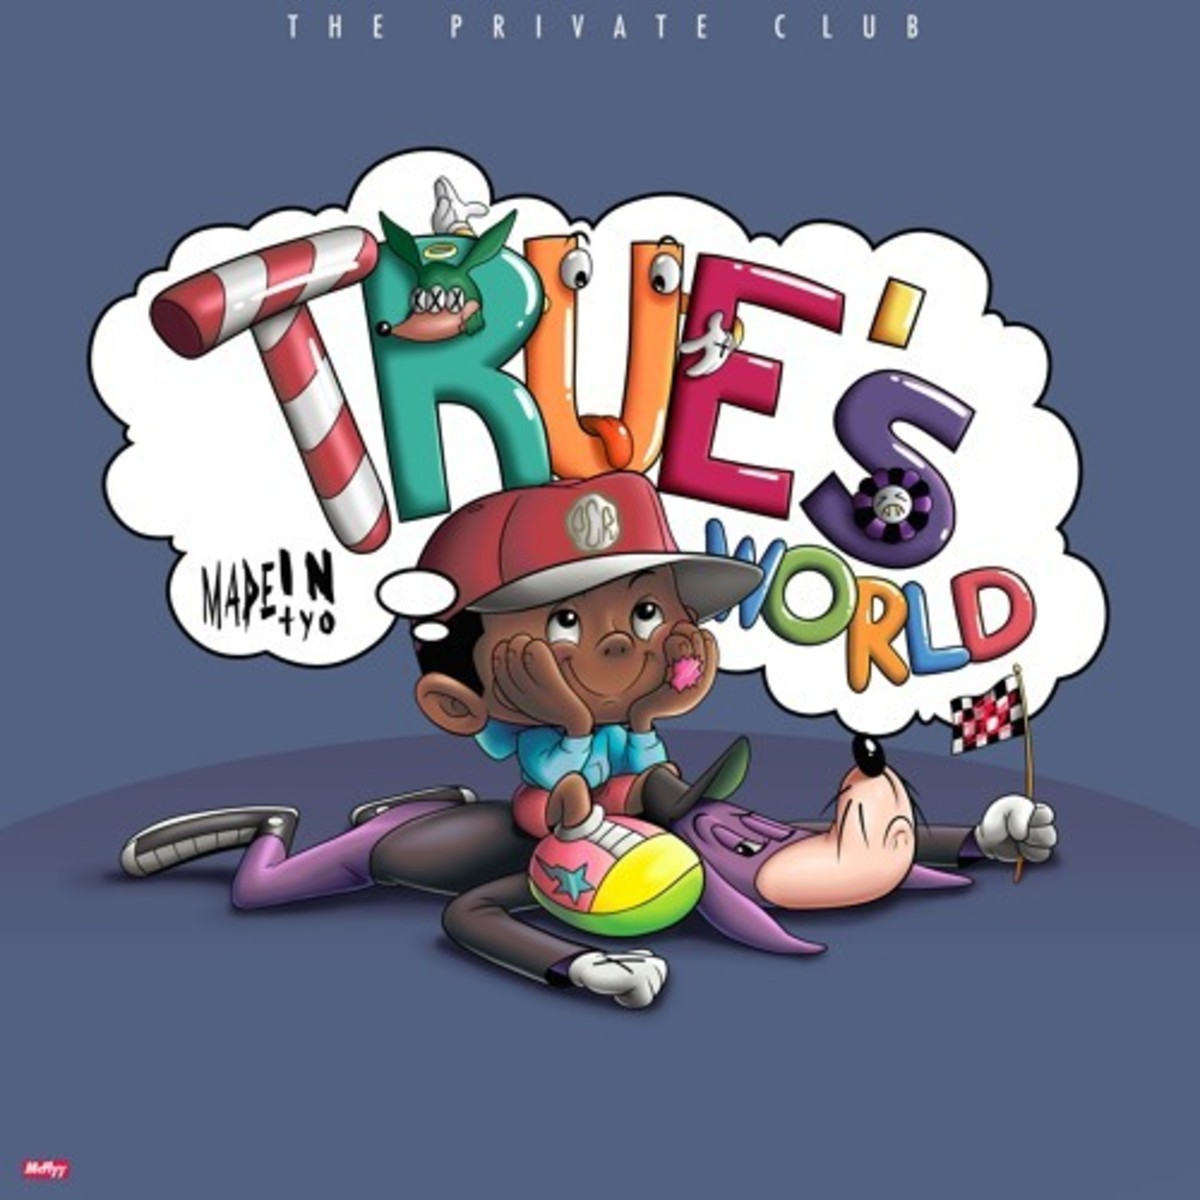 madeintyo-trues-world.jpg